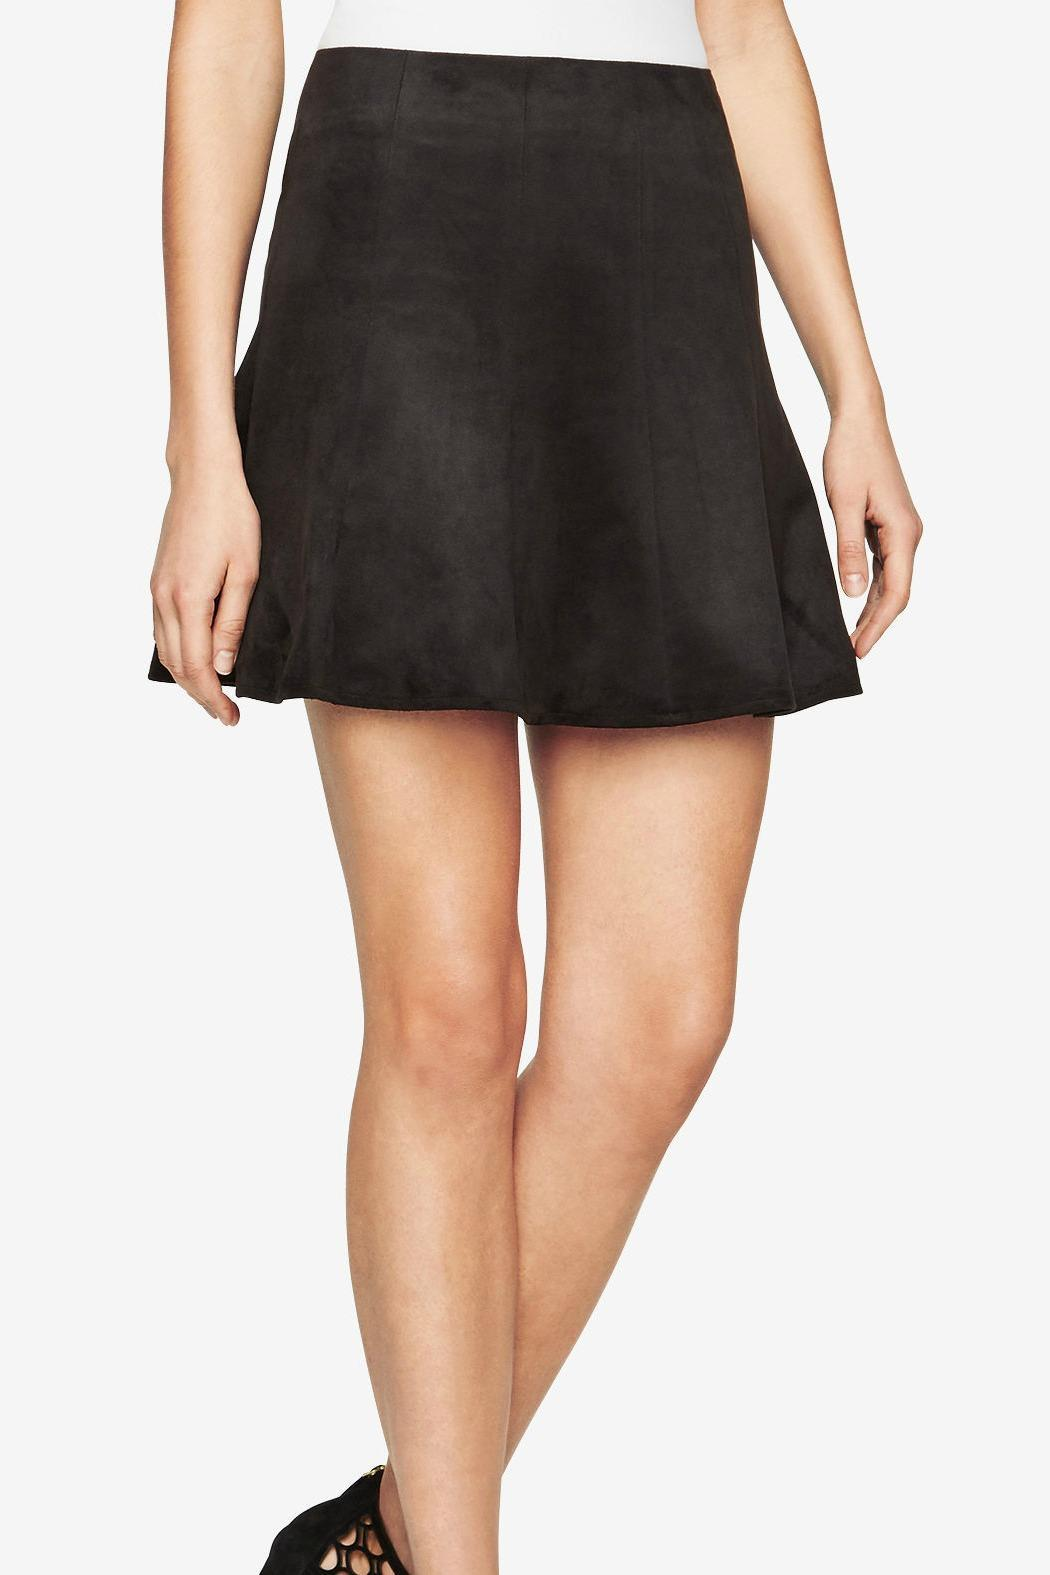 BCBG Max Azria Nicky Faux Suede Skirt from Ohio by e.j. hannah ...